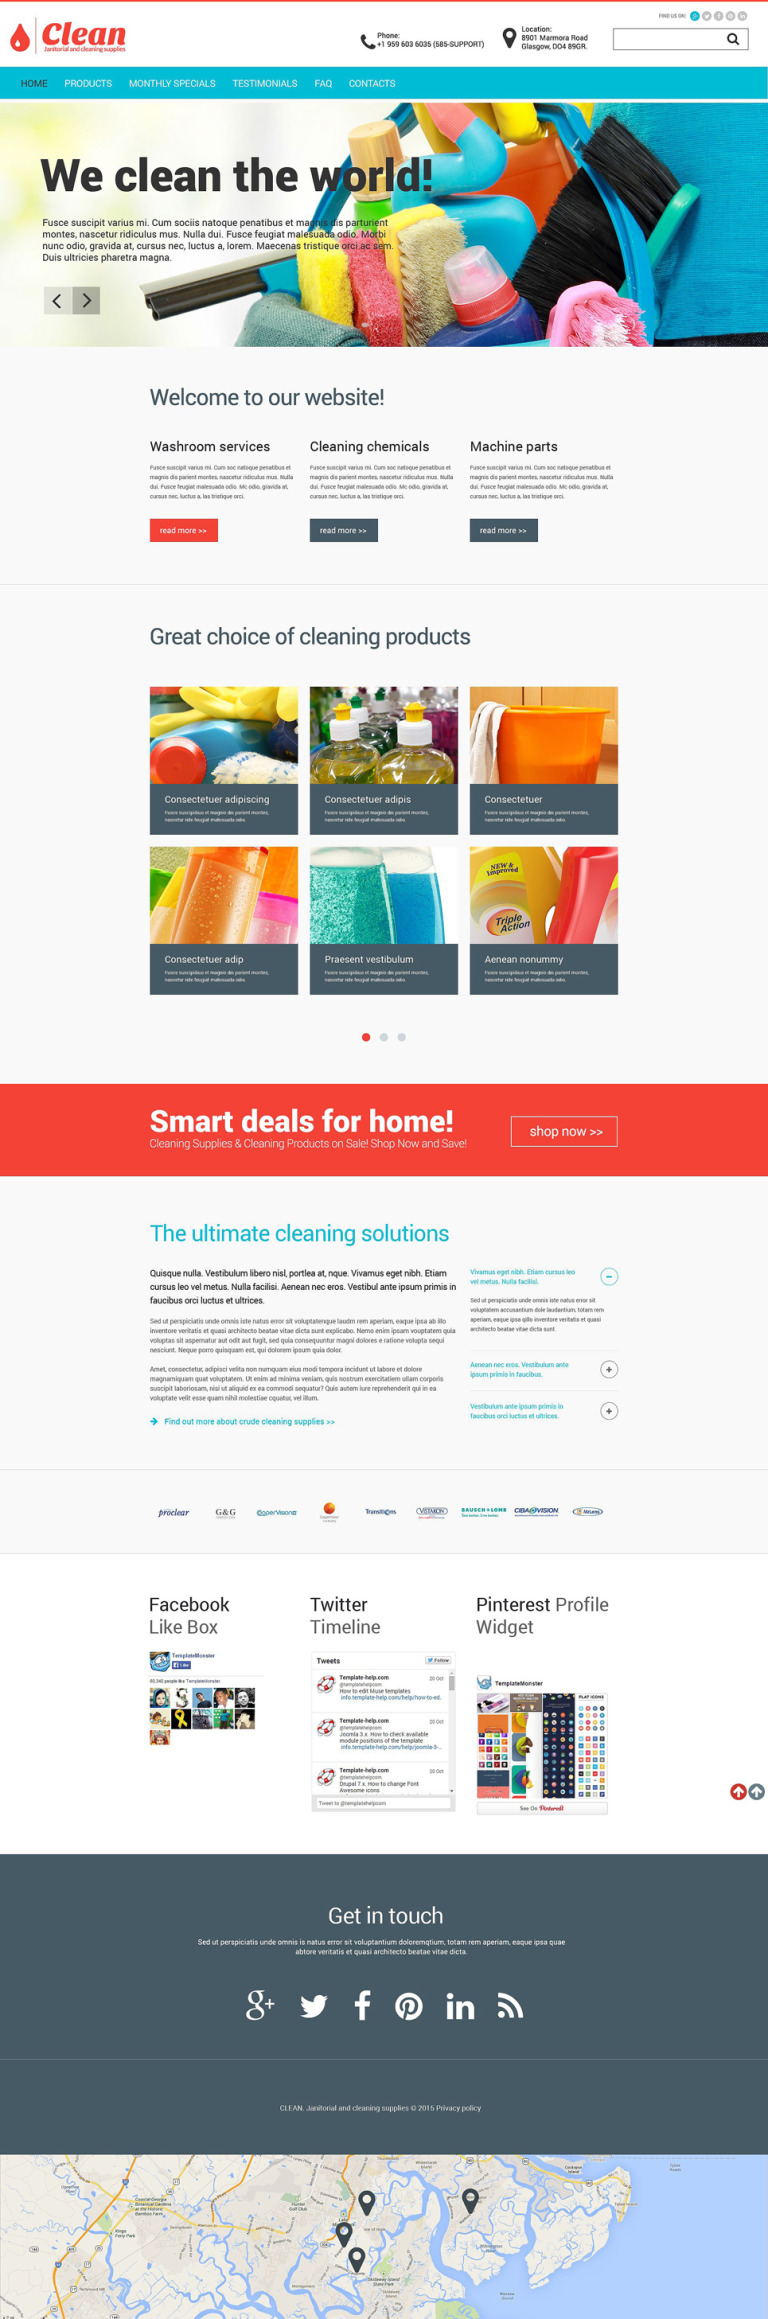 Cleaning Supplies Website Template New Screenshots BIG